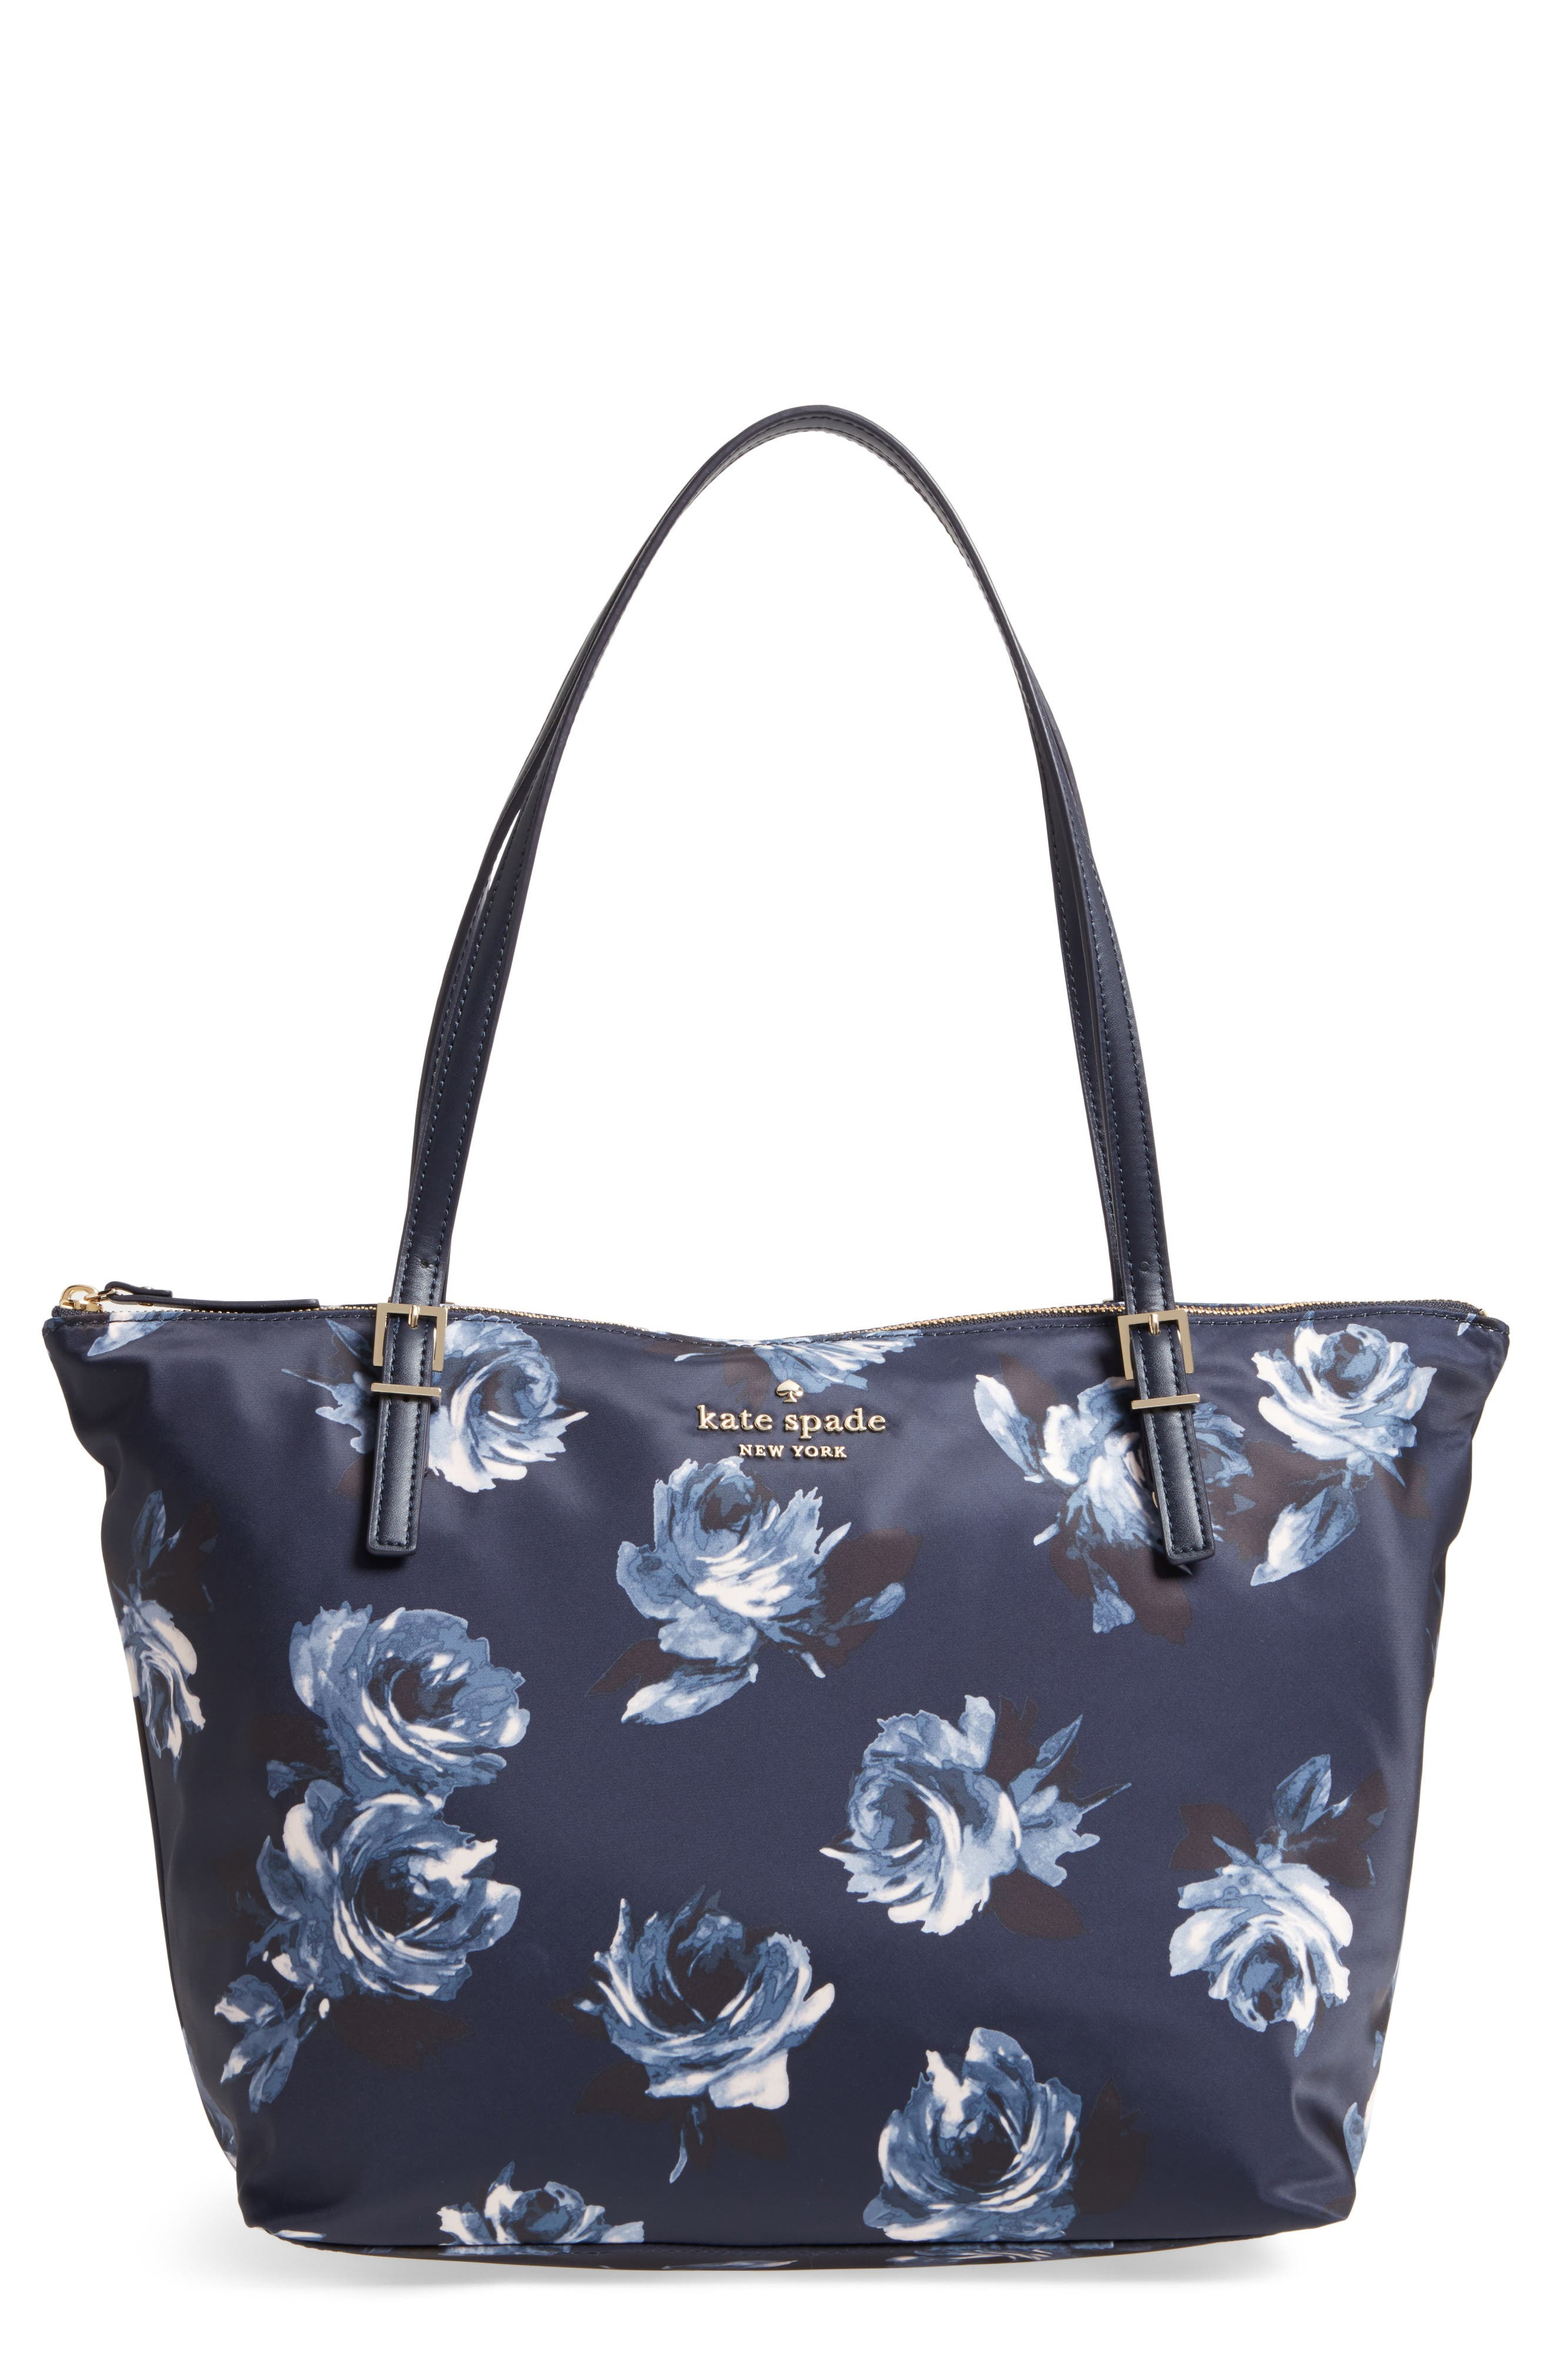 watson lane - night rose maya tote,                             Main thumbnail 1, color,                             485